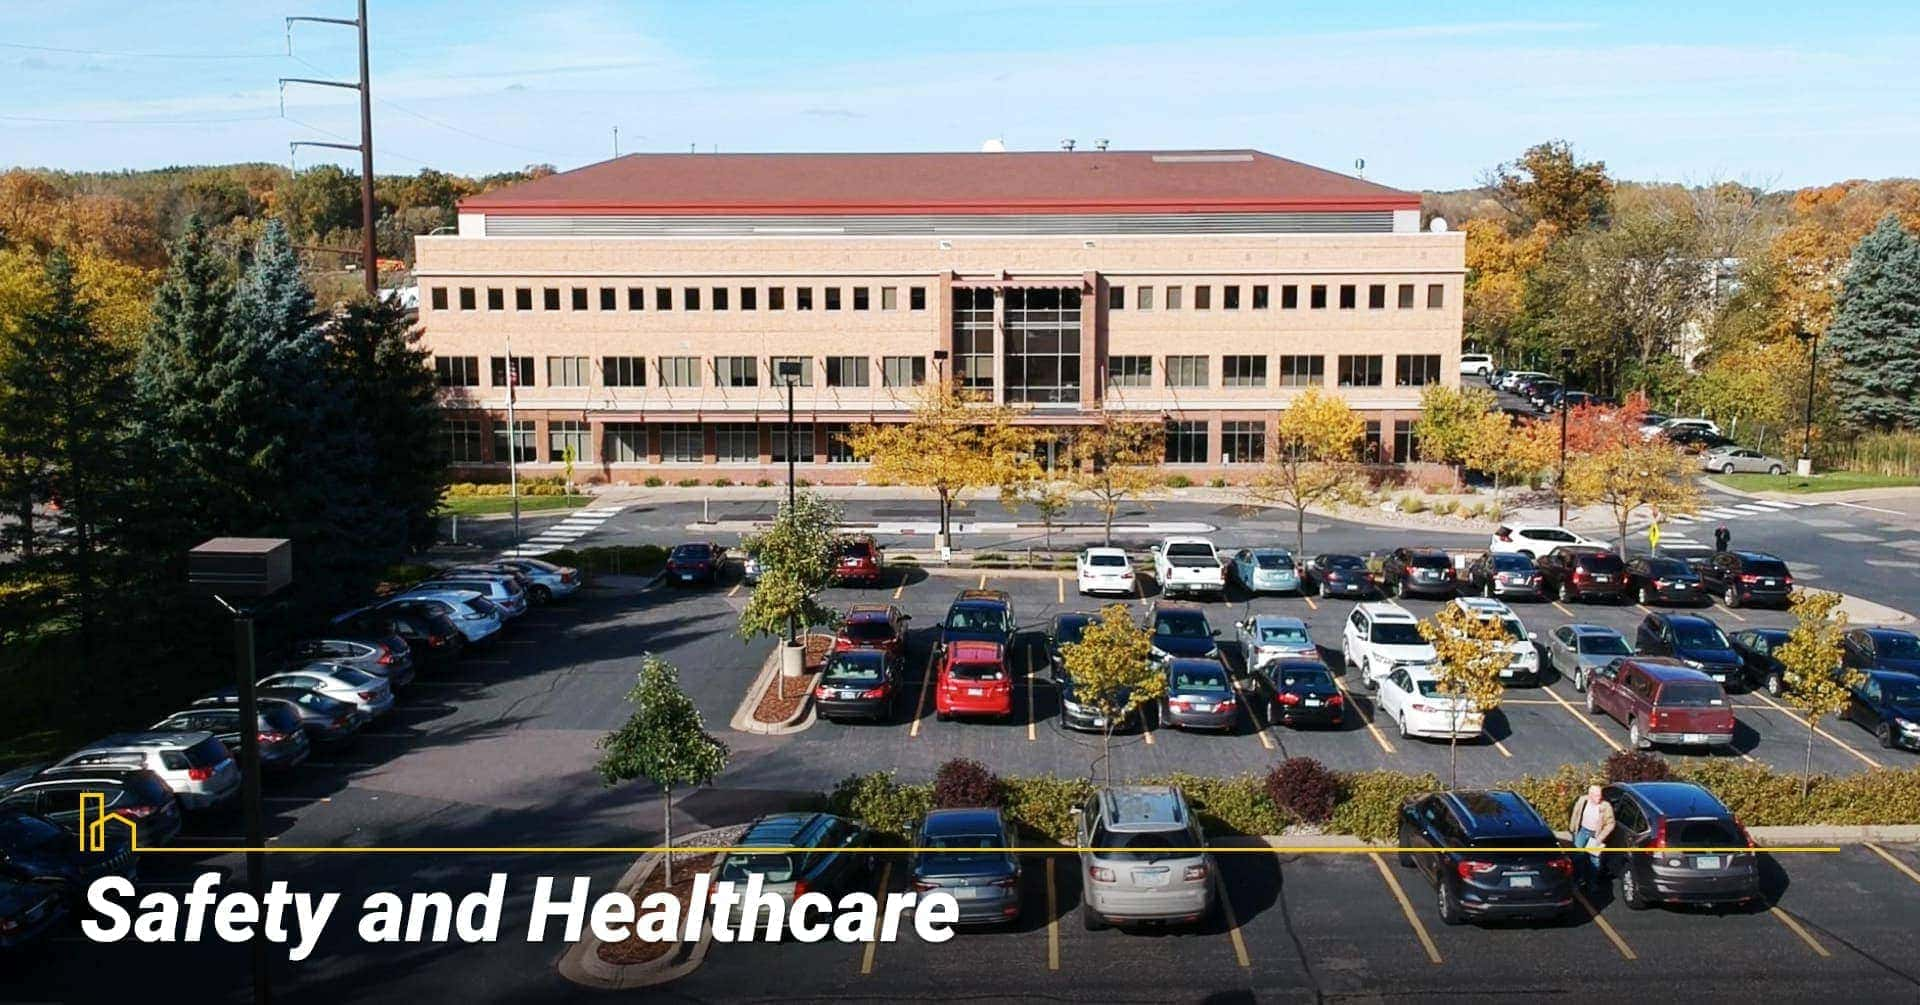 Safety and Healthcare in Wayzata, MN